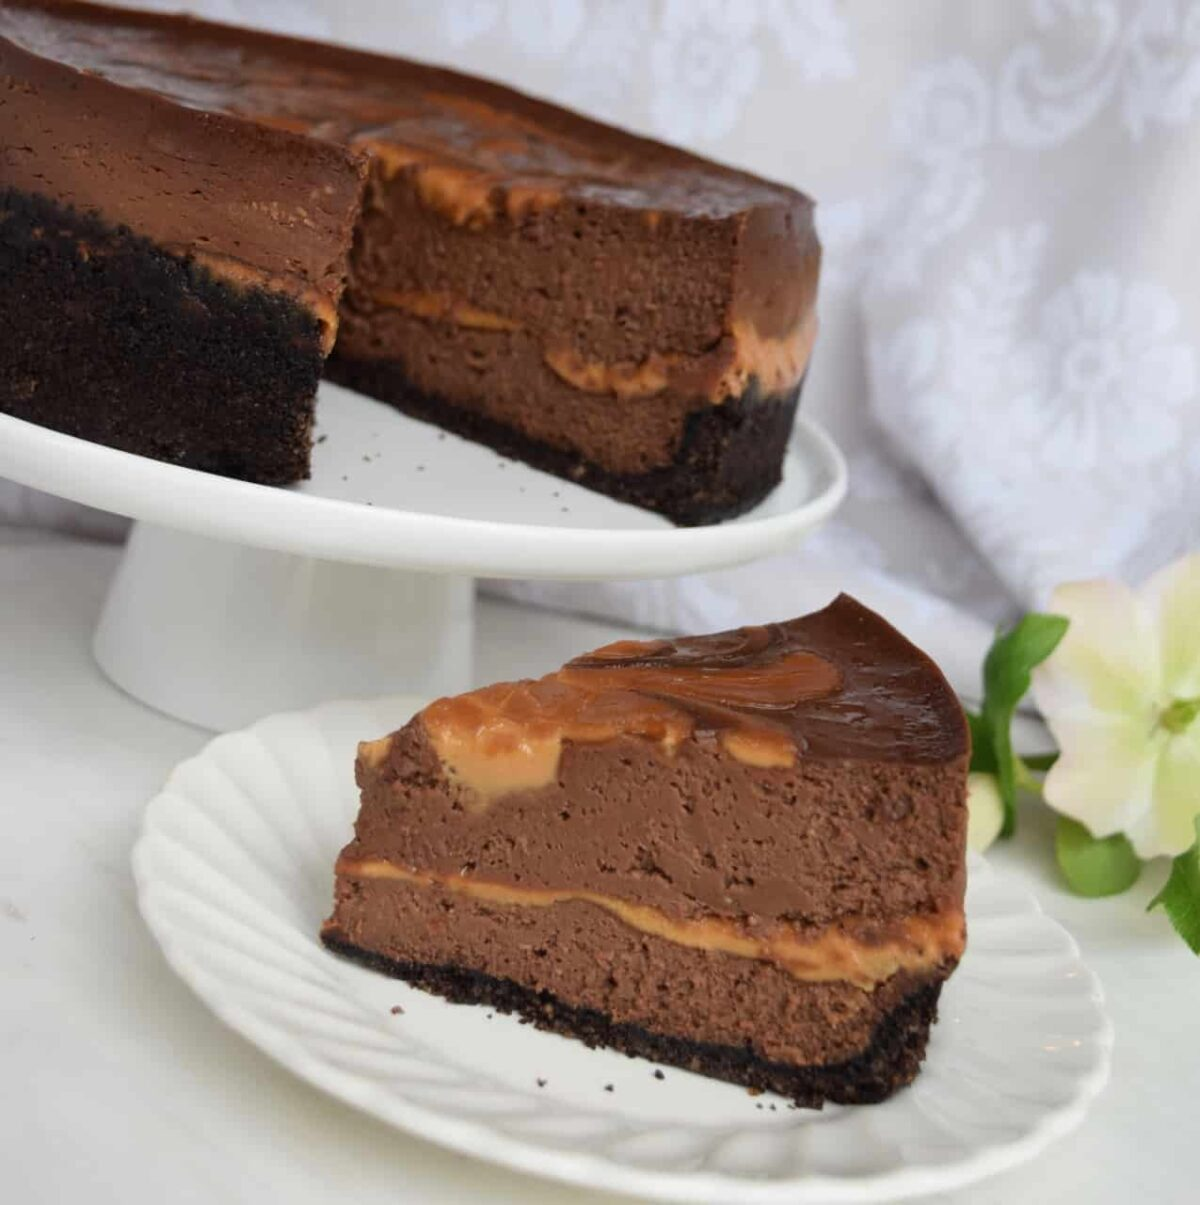 slice of chocolate cheesecake on a white plate with the rest of the cake on a cake stand